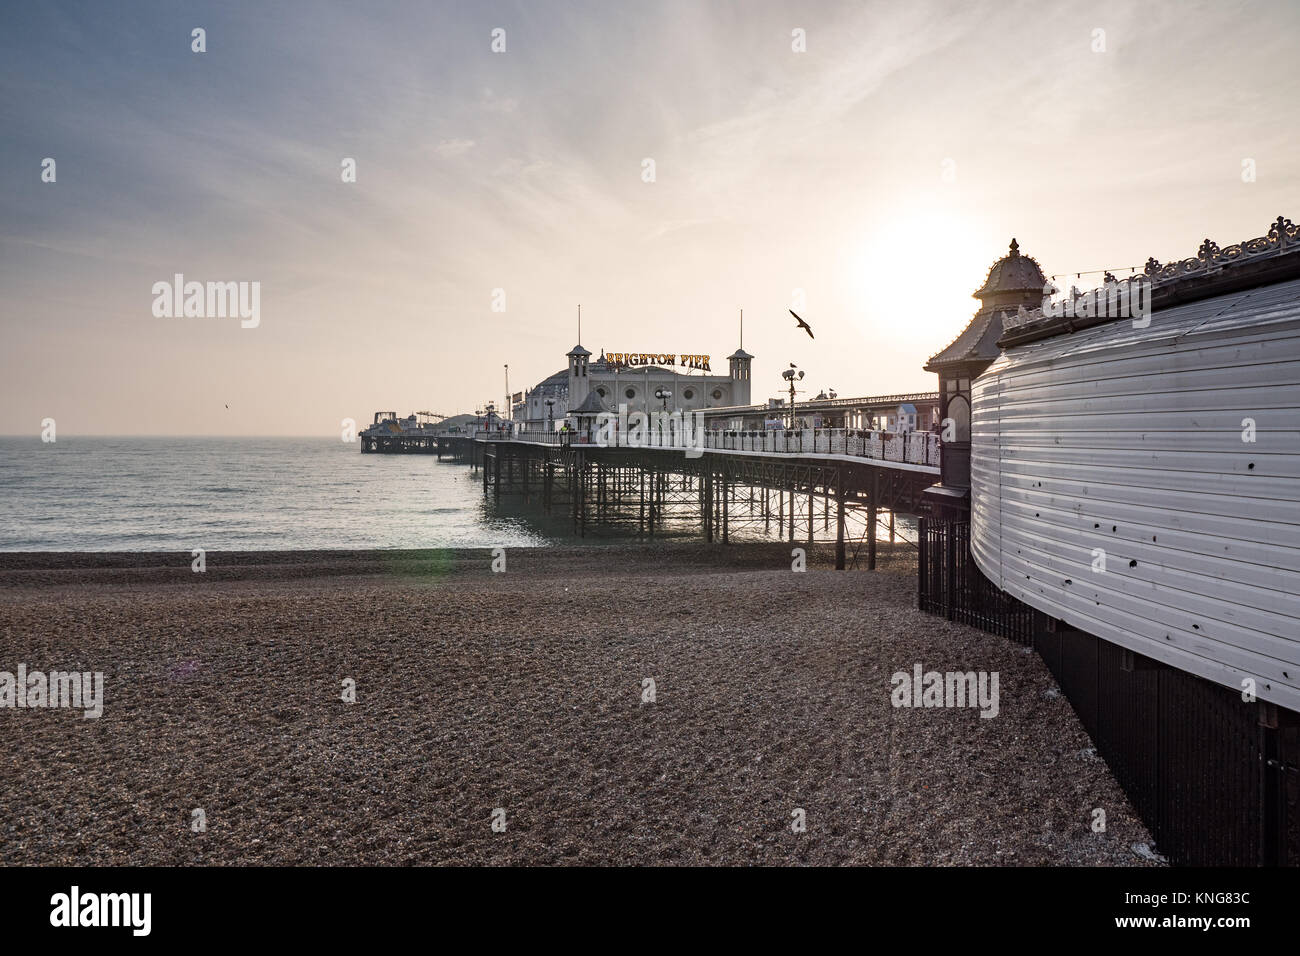 Brighton Pier, Sussex, England, UK. - Stock Image